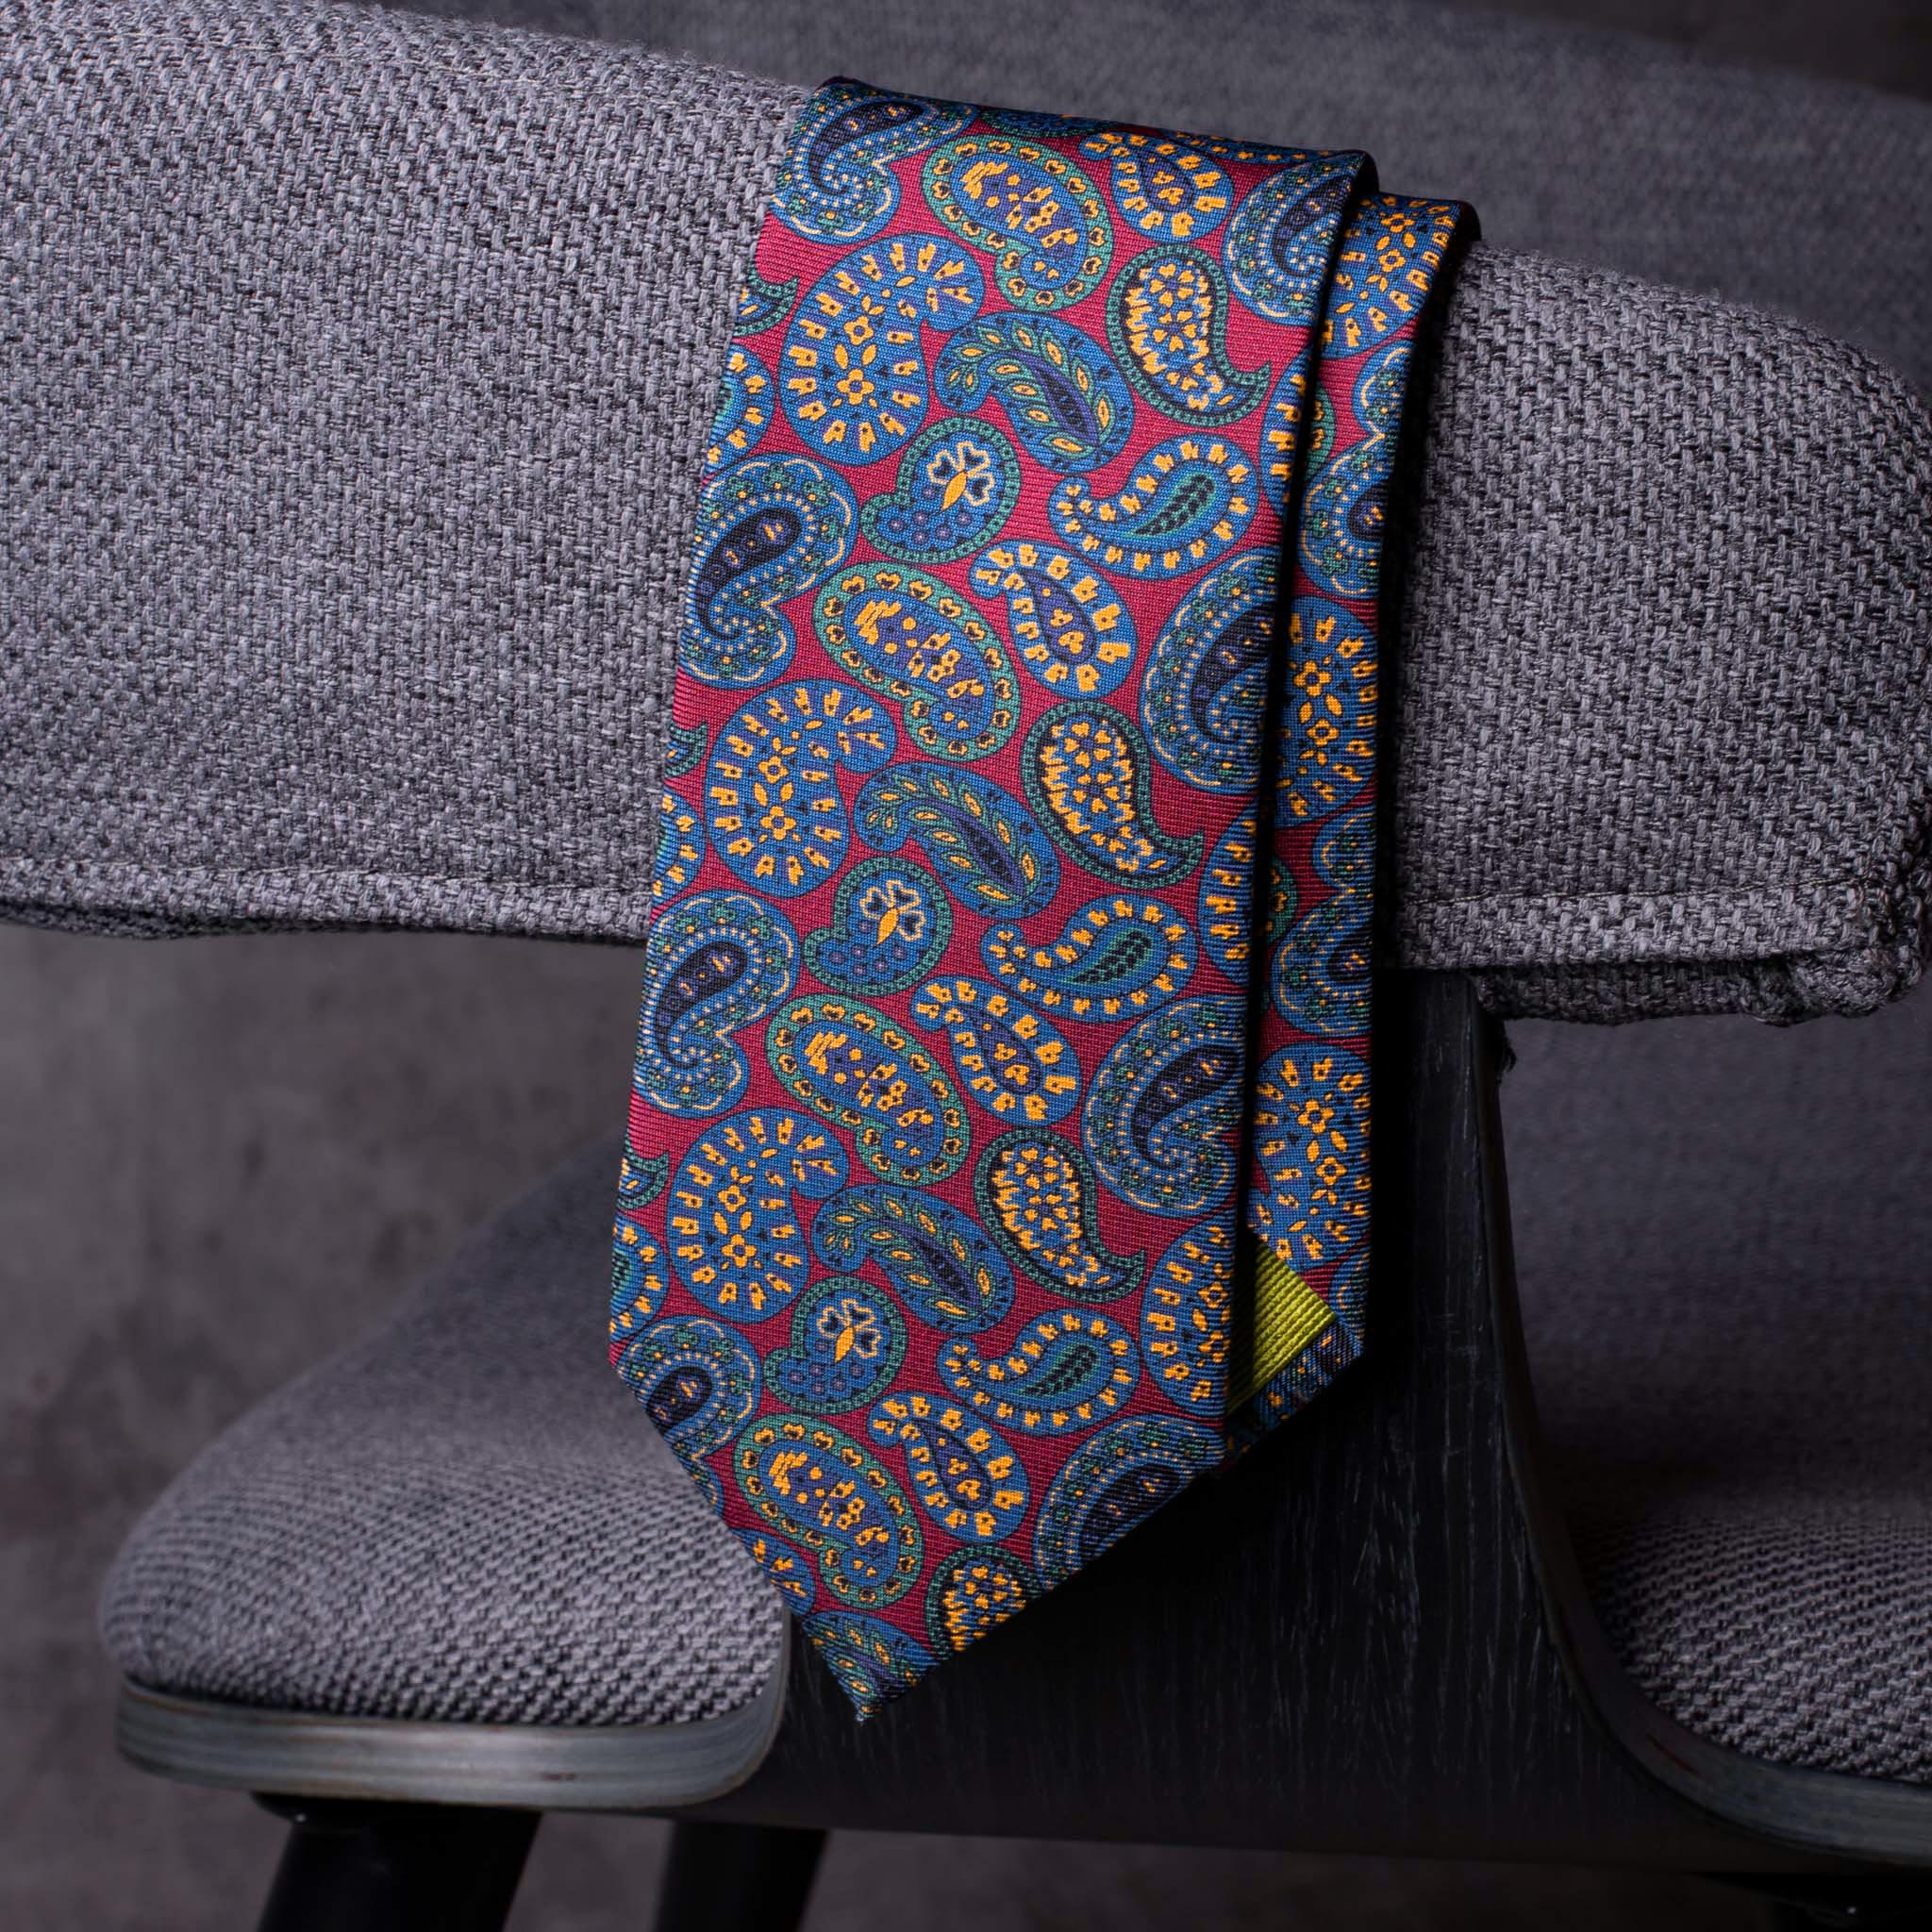 PRINTED SILK-0448-Tie-Initials-Corbata-Iniciales-The-Seelk-3